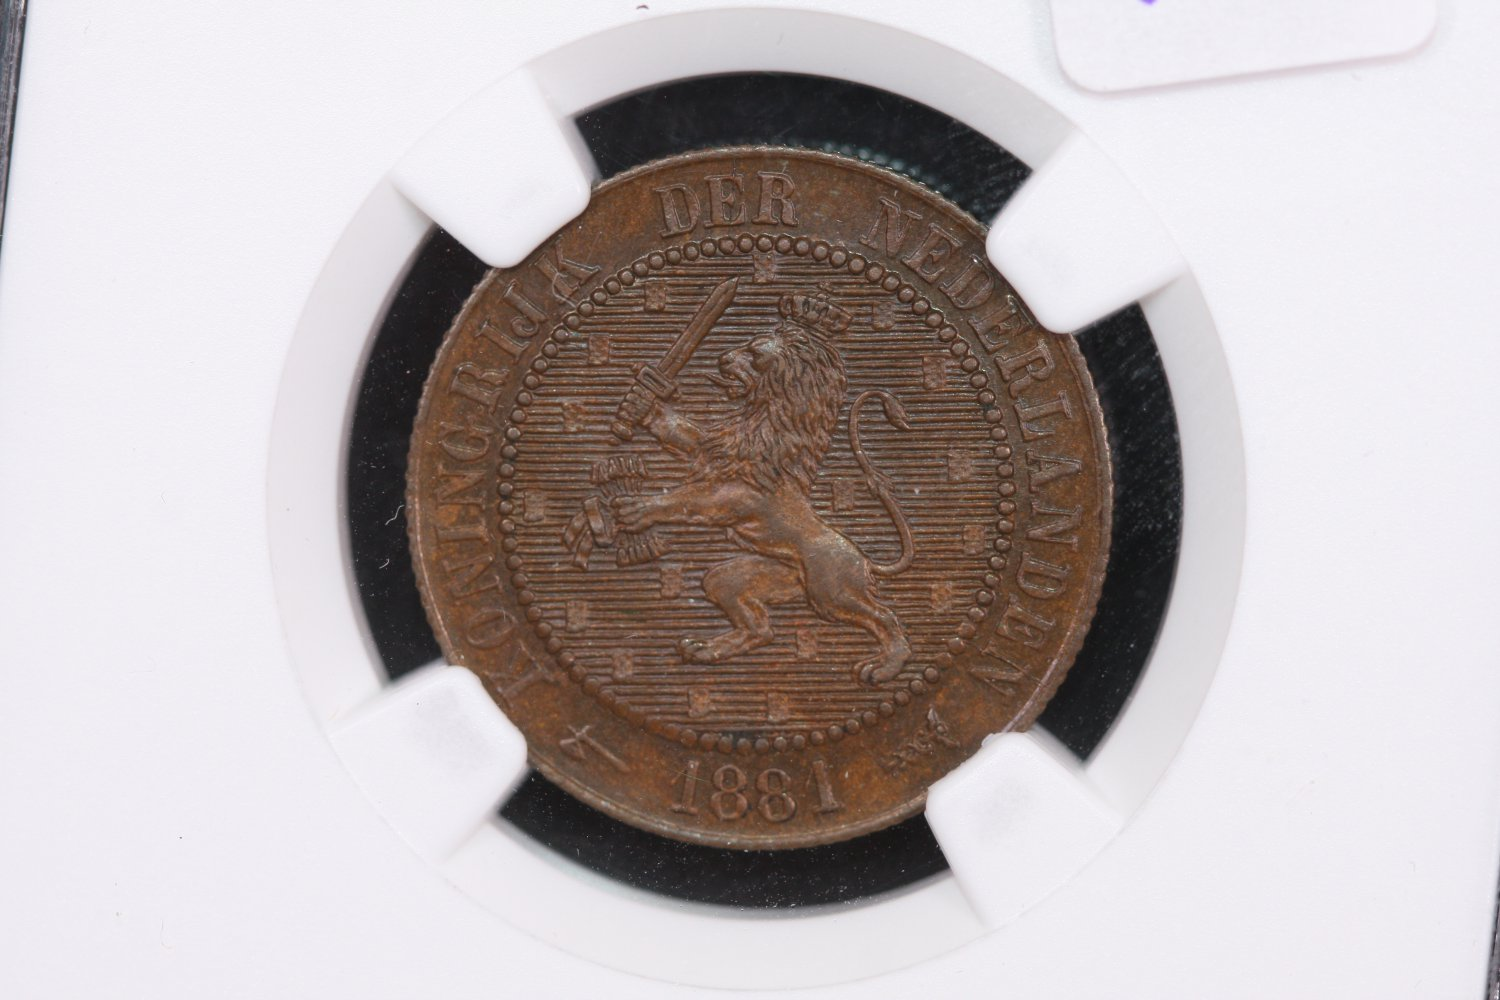 1881 Netherland, 2 1/2 Cent. NGC MS 63 Brown.